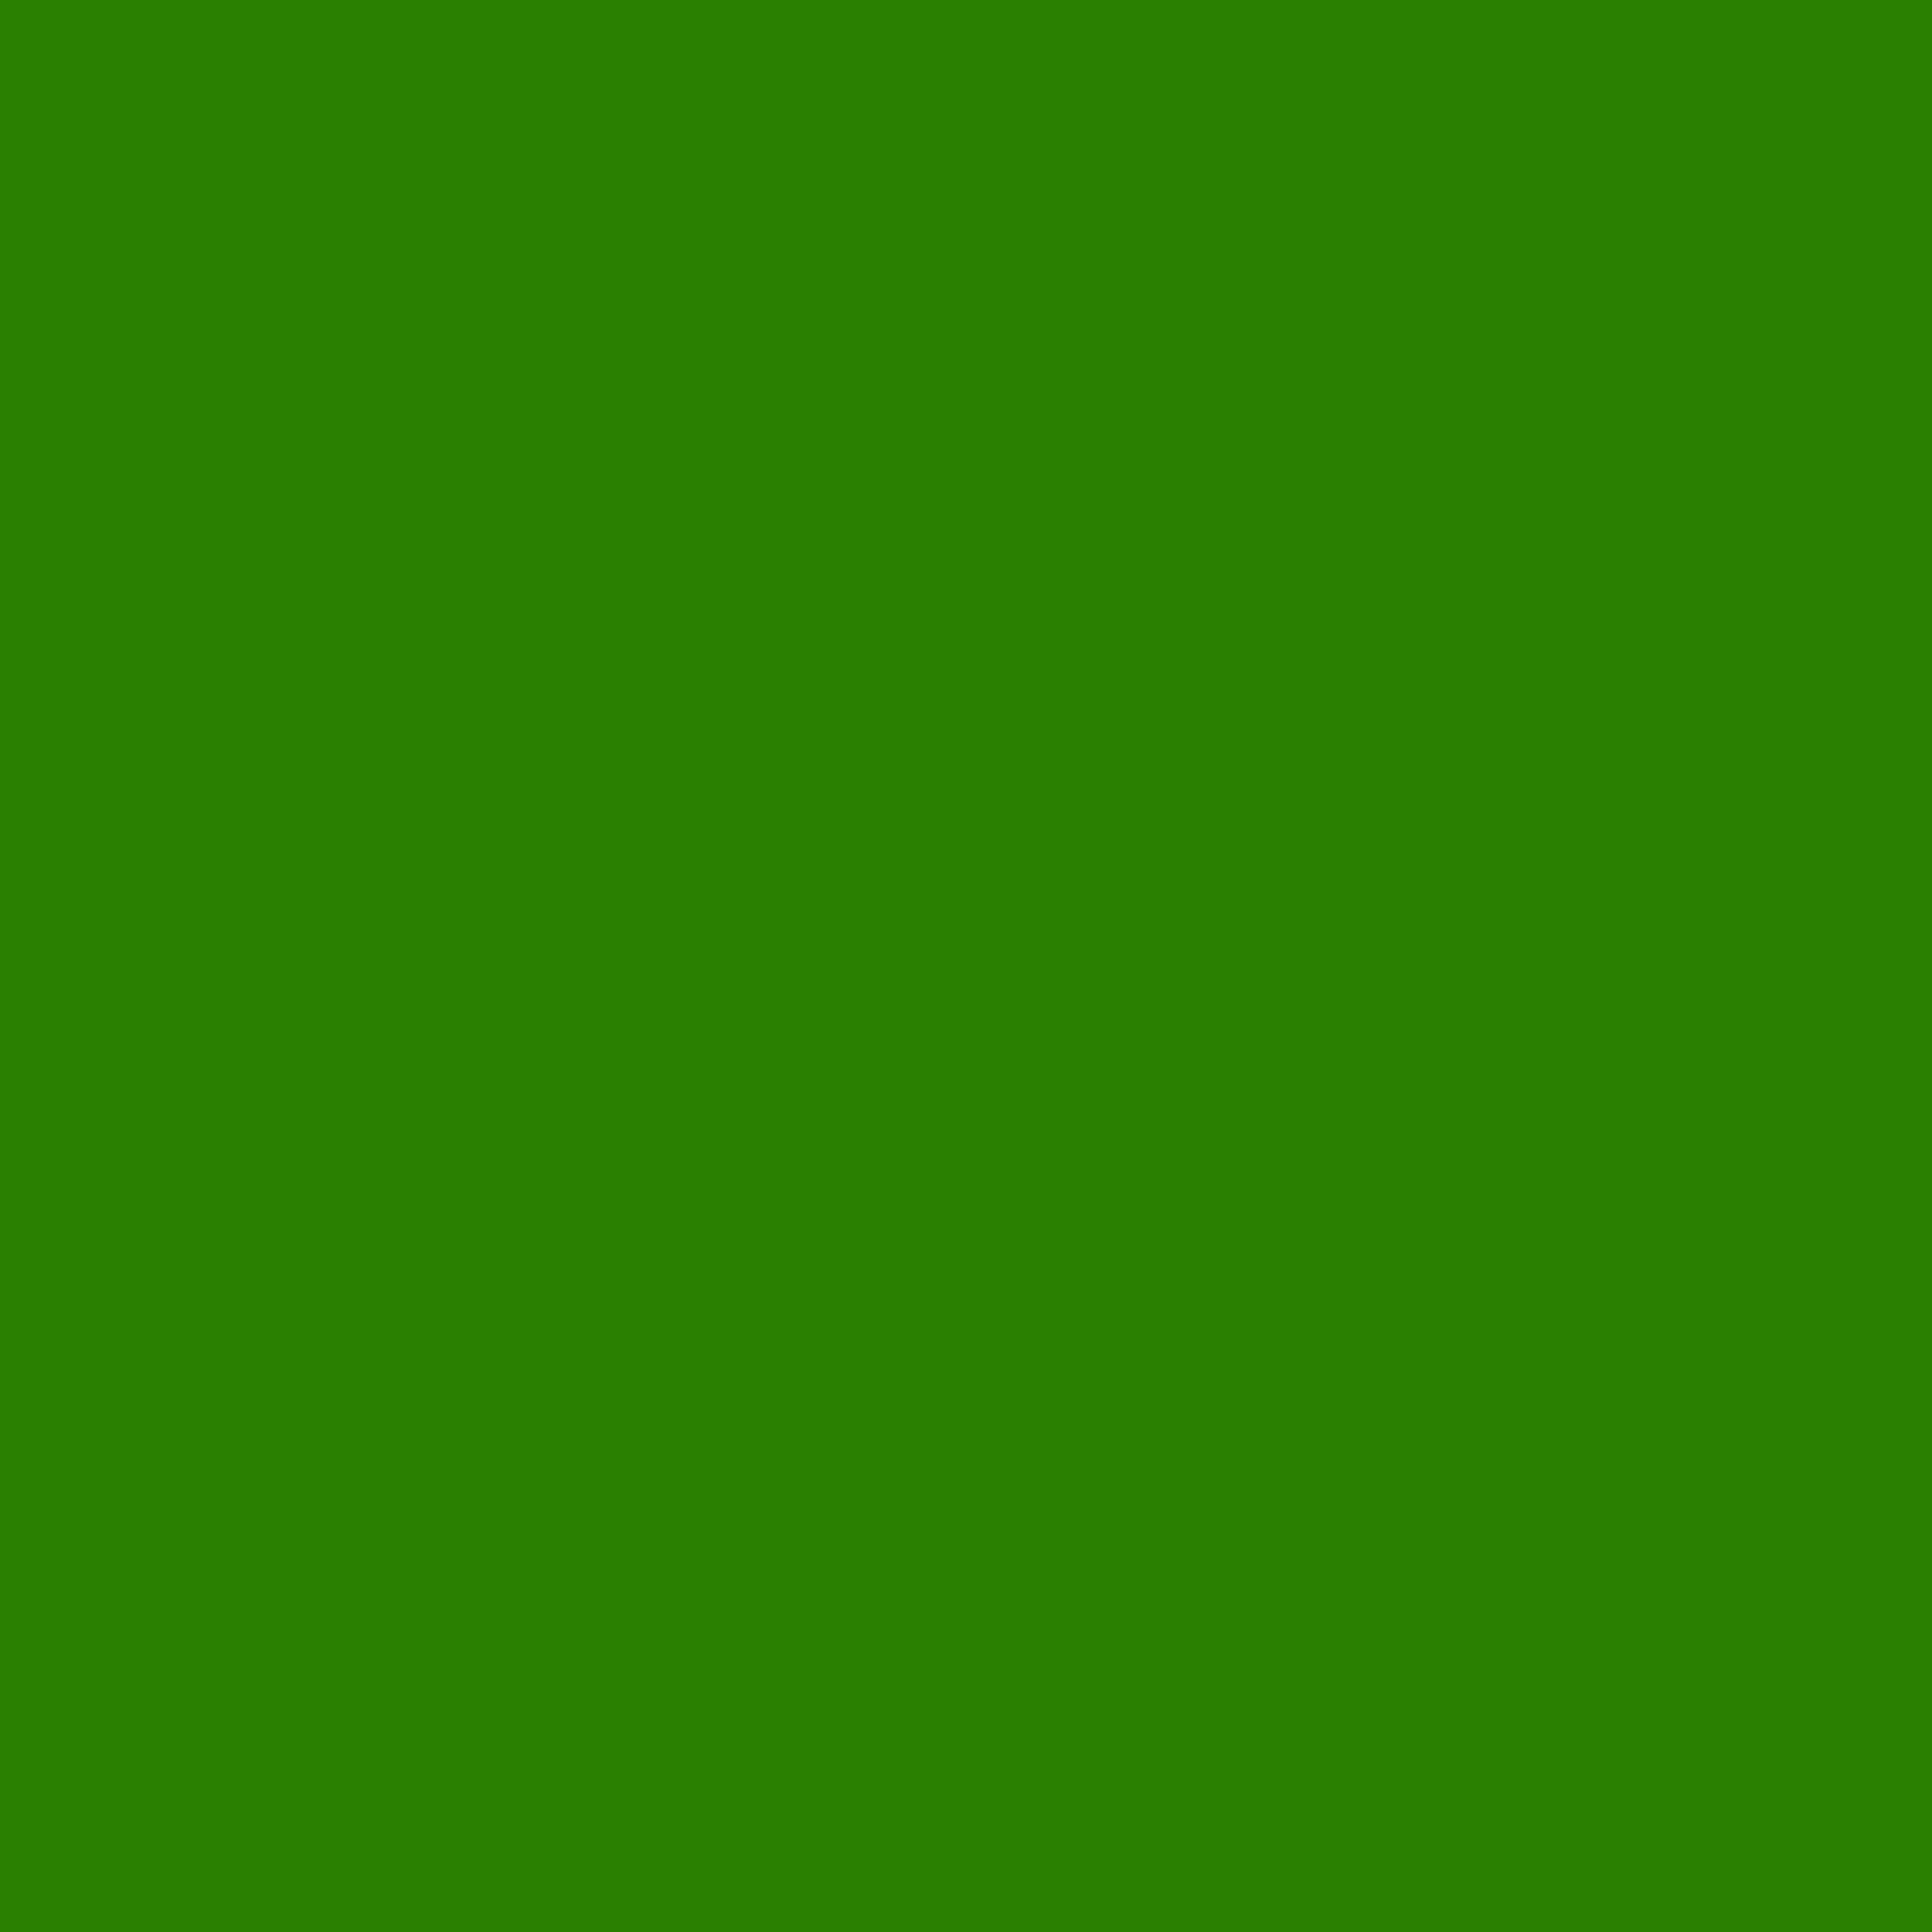 2048x2048 Napier Green Solid Color Background